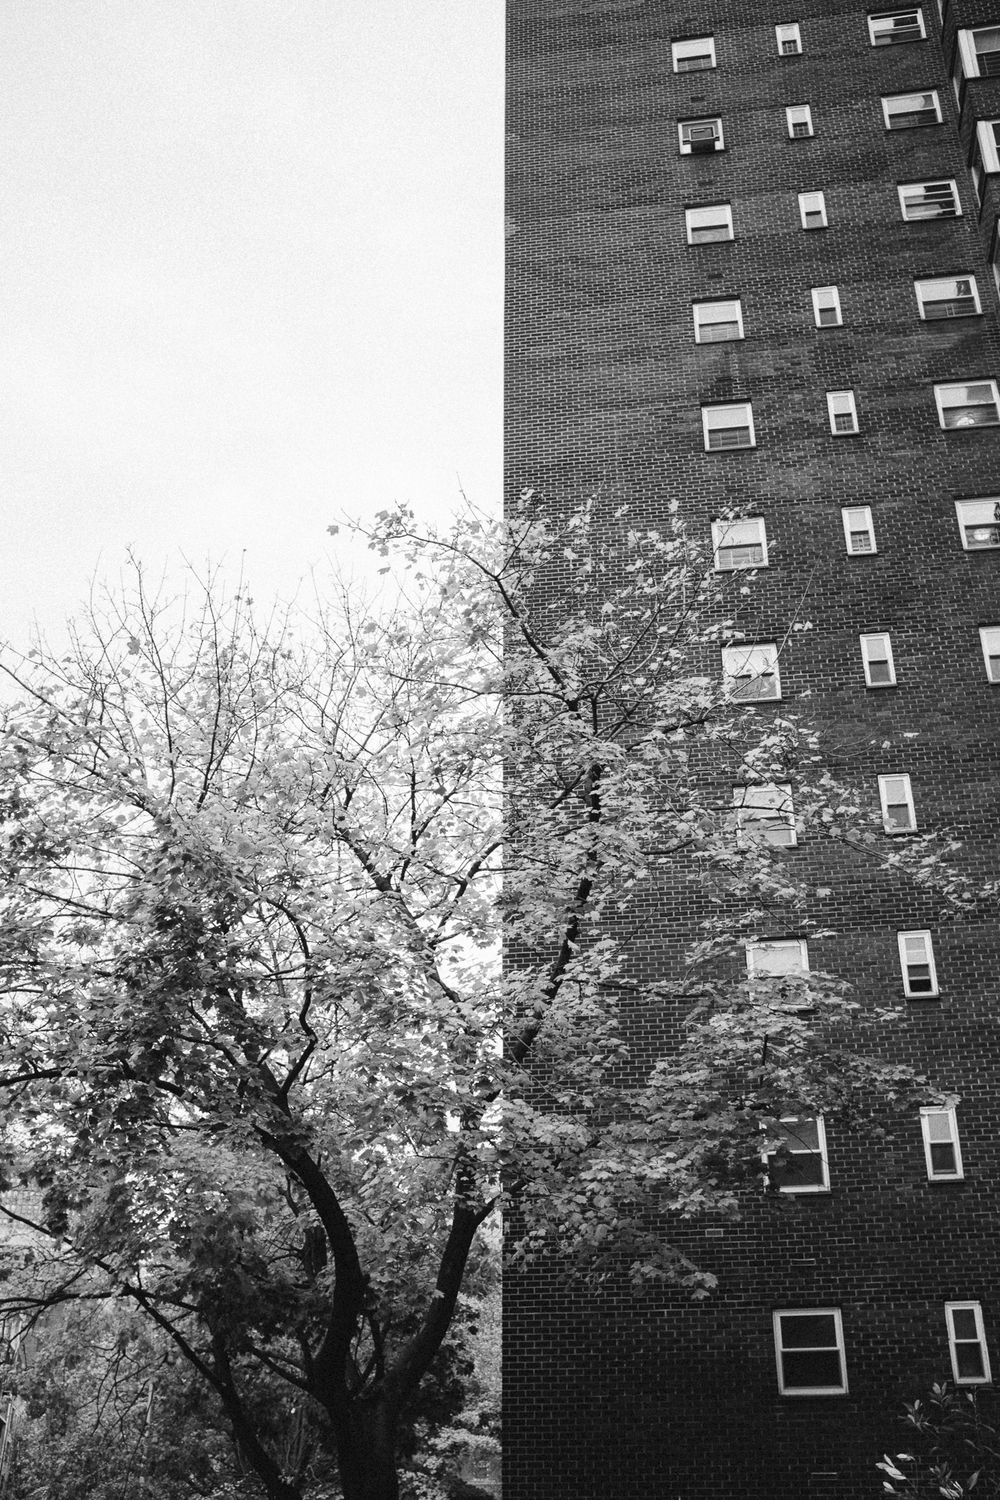 Chelsea Contrast, W. 25th Street, Manhattan